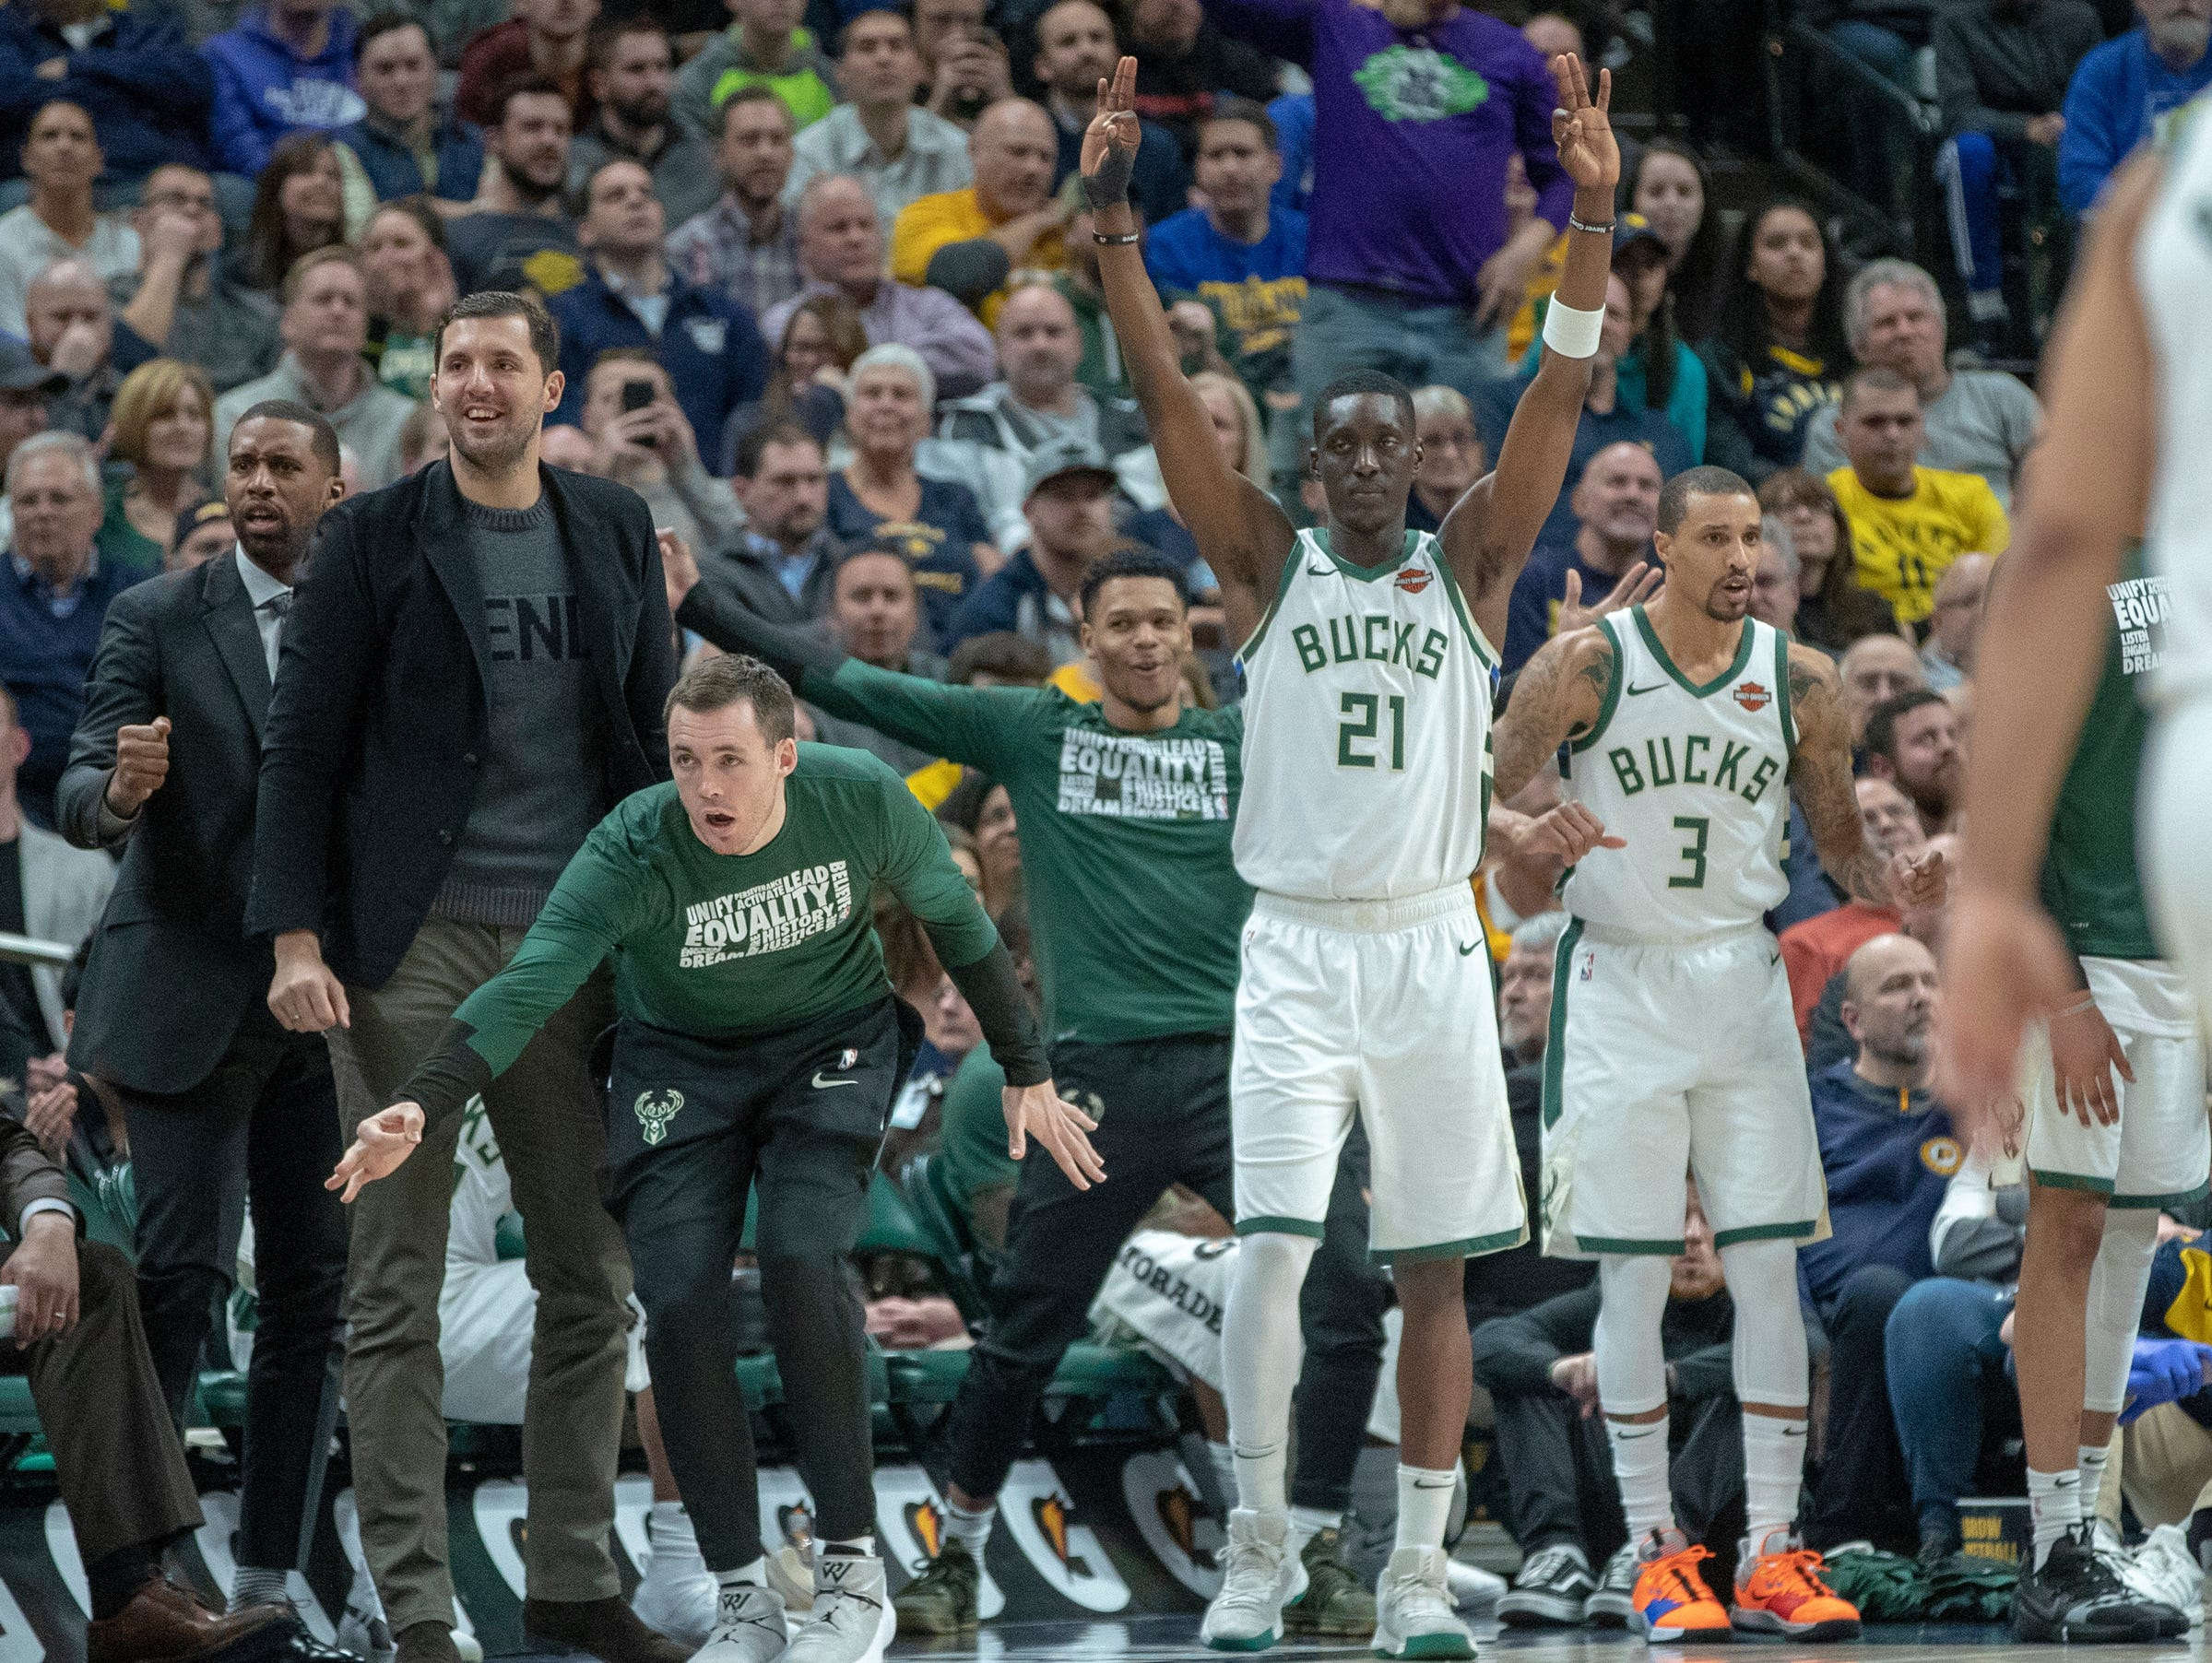 Milwaukee bench players celebrate a late score to pull the game away for them against Indiana, Bankers Life Fieldhouse, Indianapolis, Wednesday, Feb. 13, 2019. Milwaukee won 106-97.